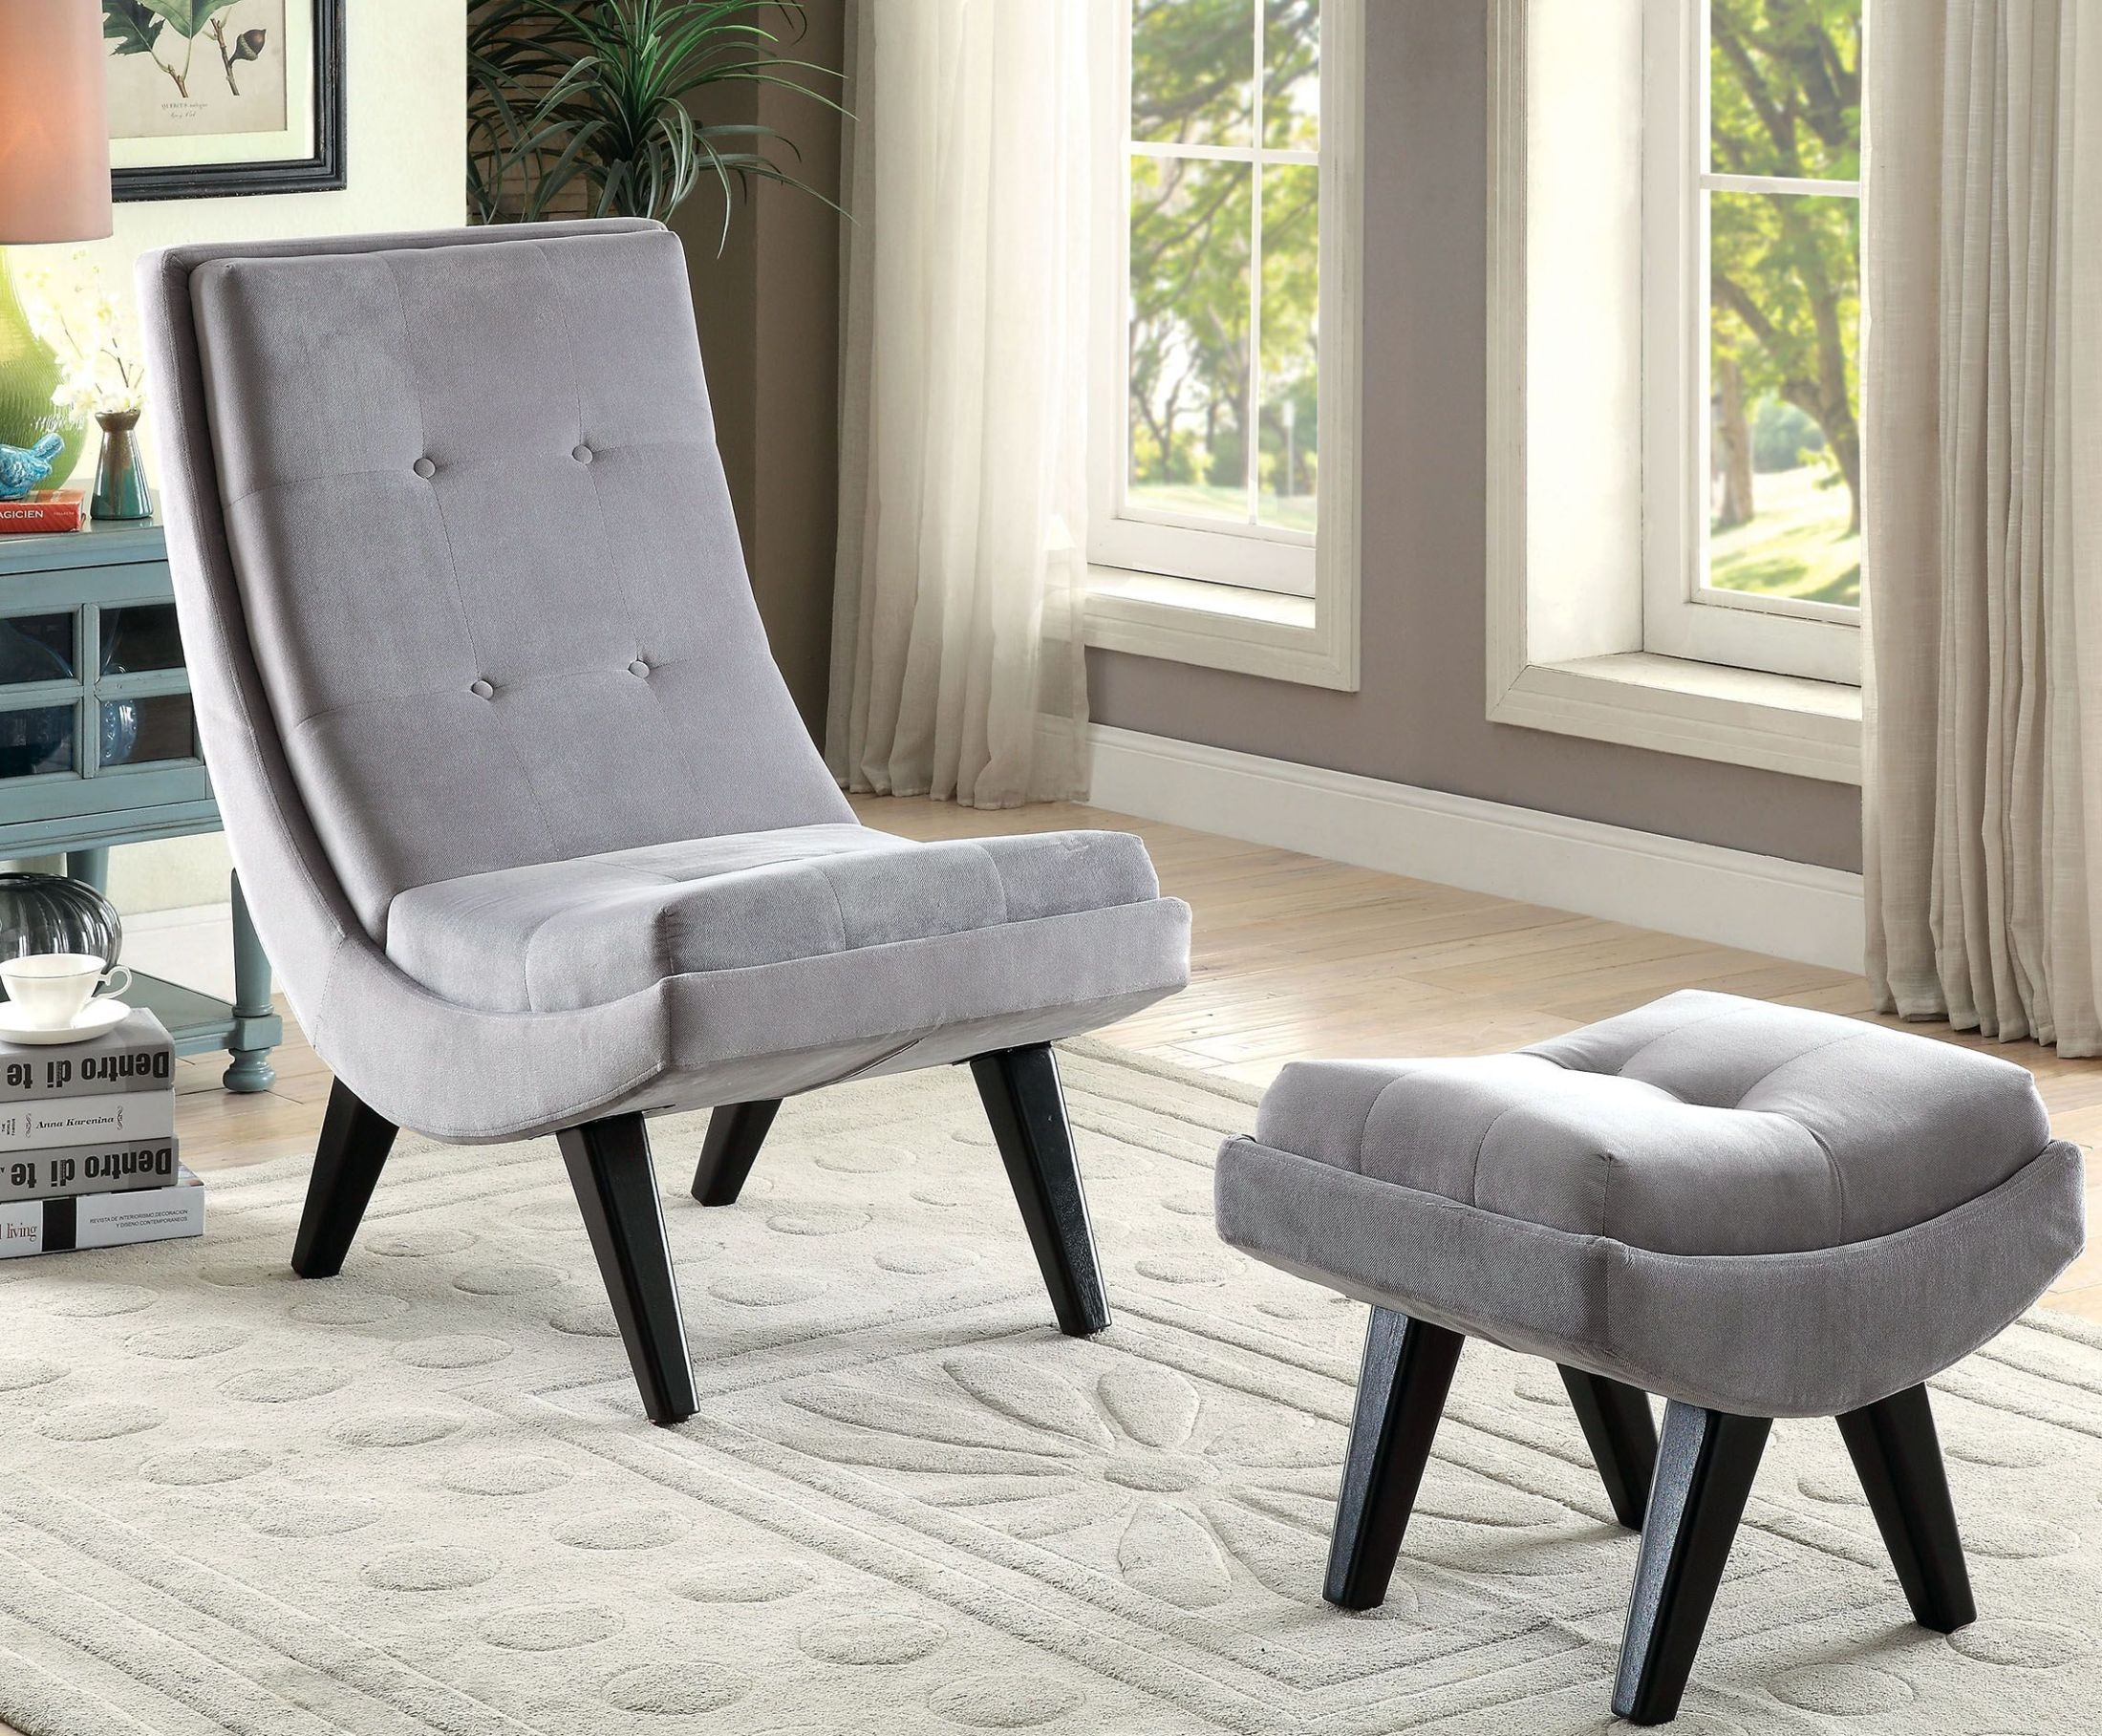 gray accent chair with ottoman balcony table and chairs esmeralda from furniture of